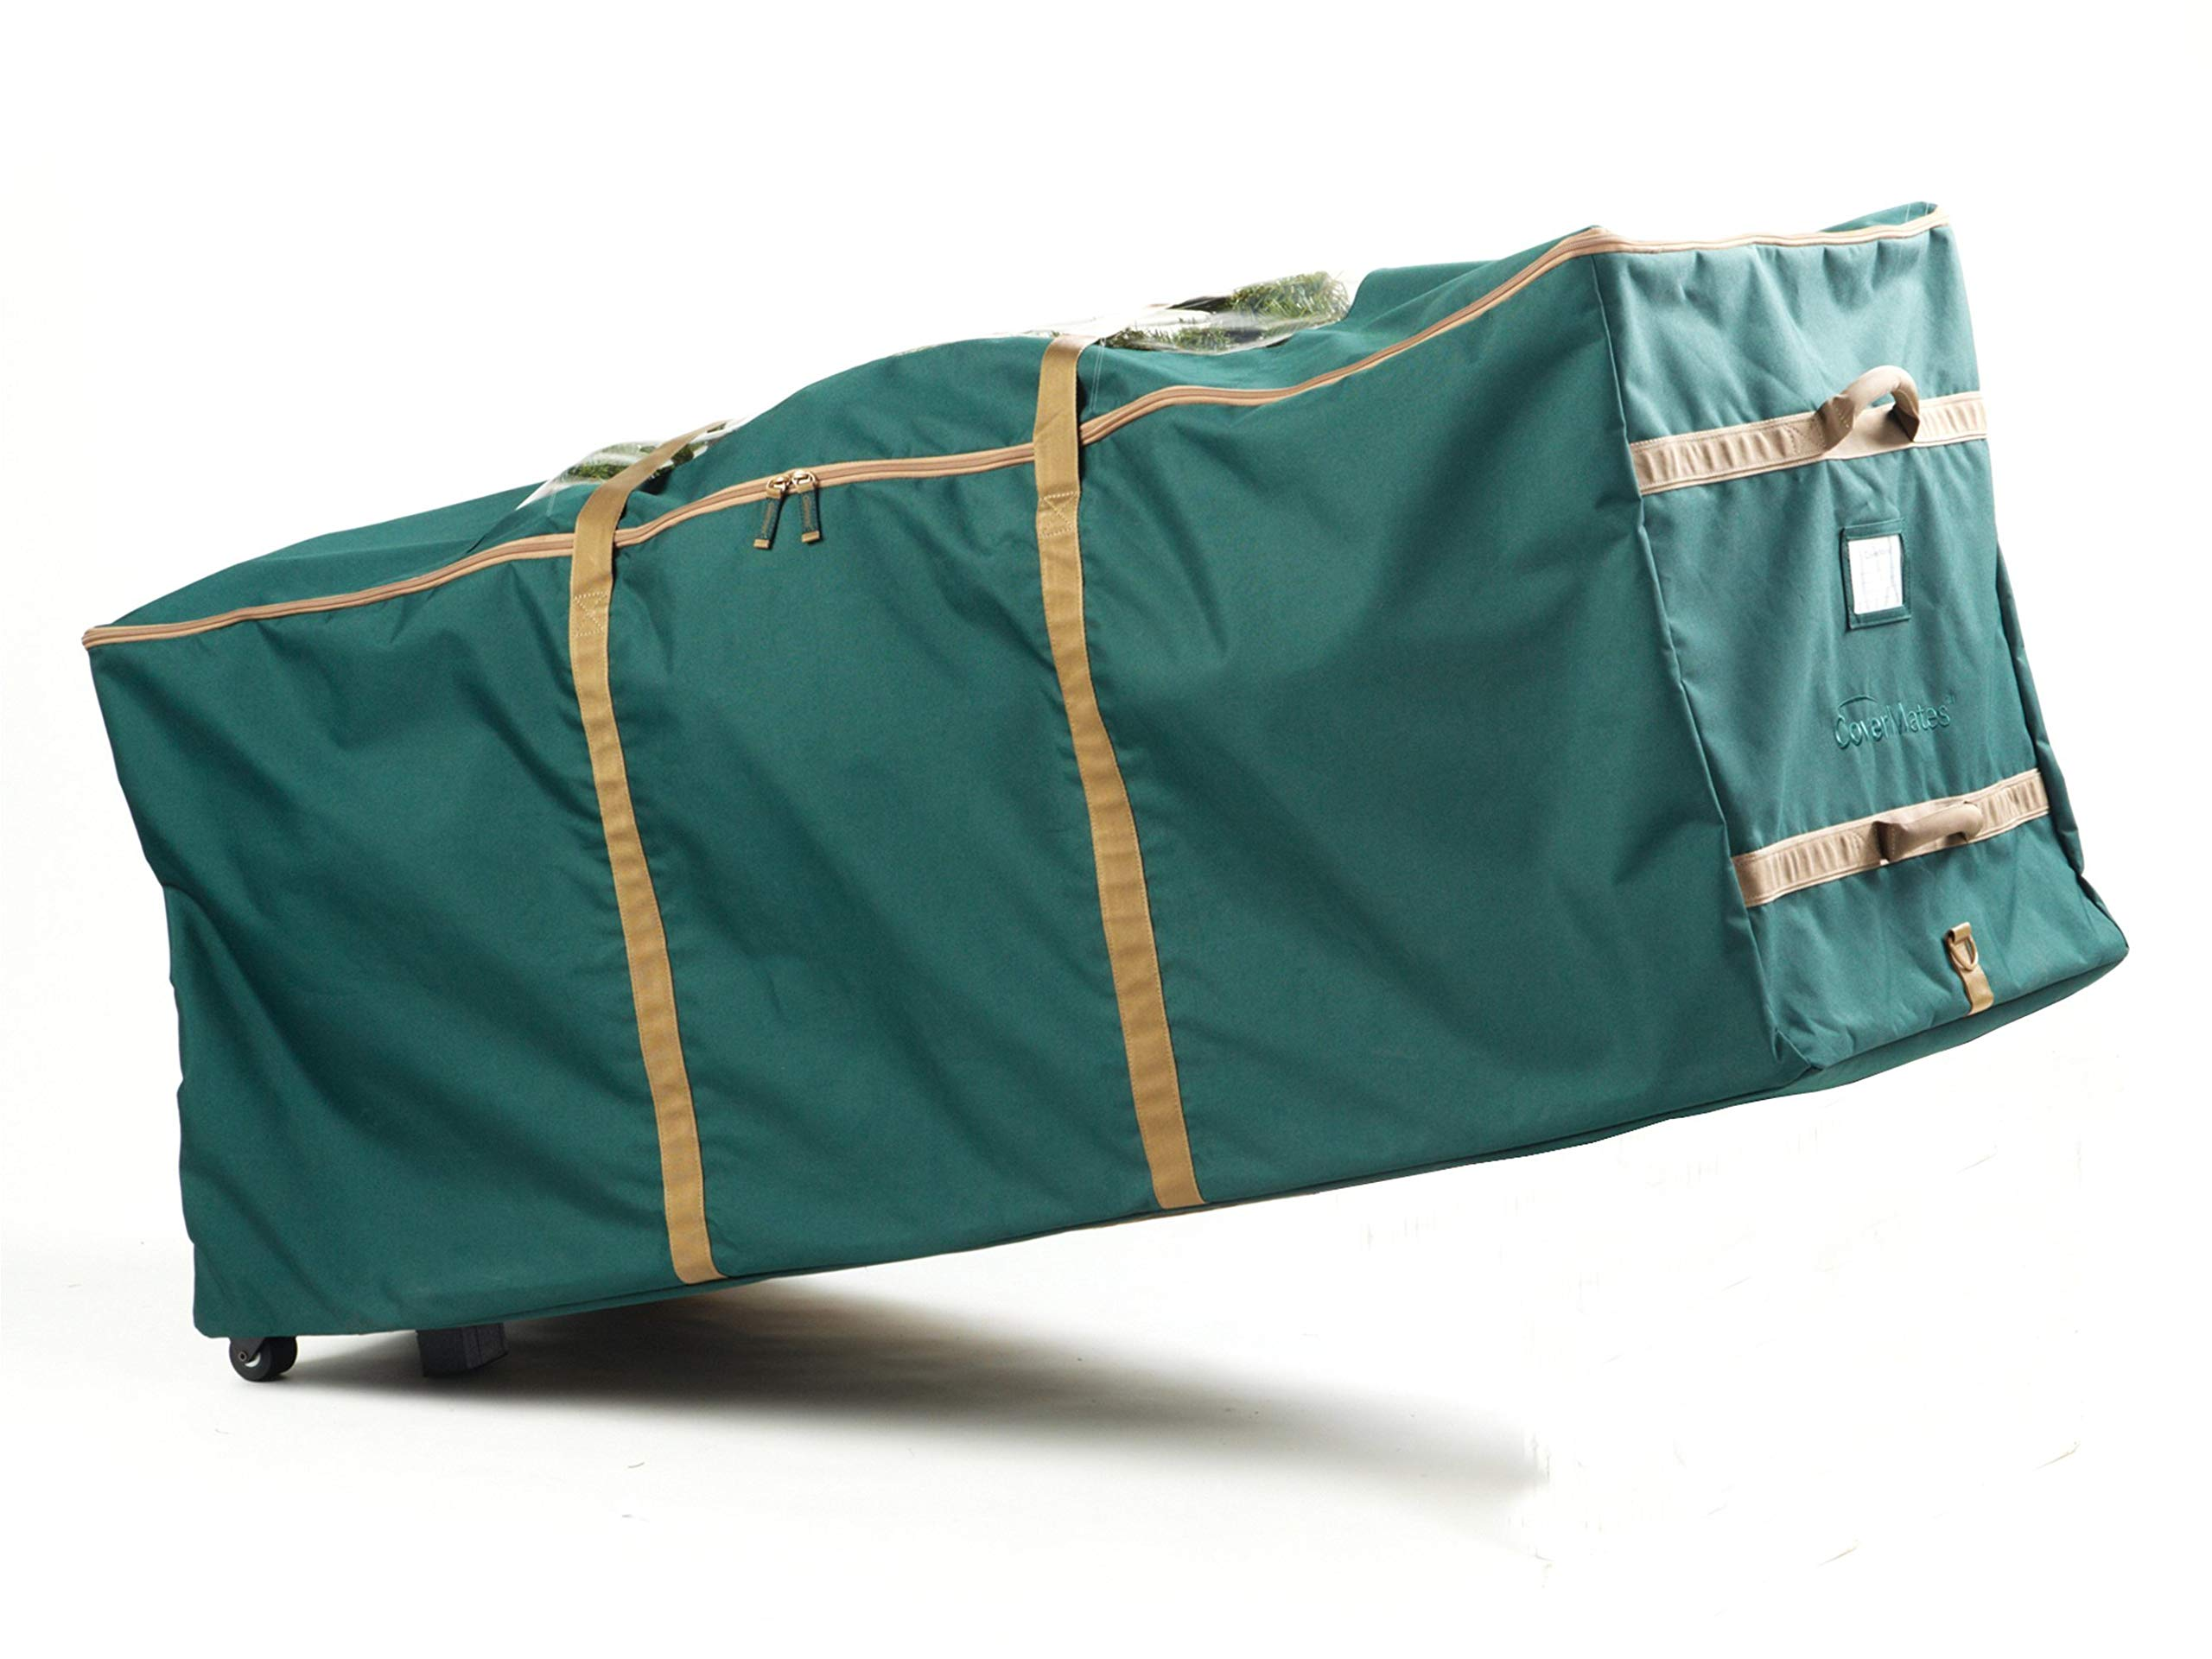 Covermates – Holiday Rolling Tree Storage Bag – Fits 9 to 11 Foot Tree – 3 Year Warranty- Green